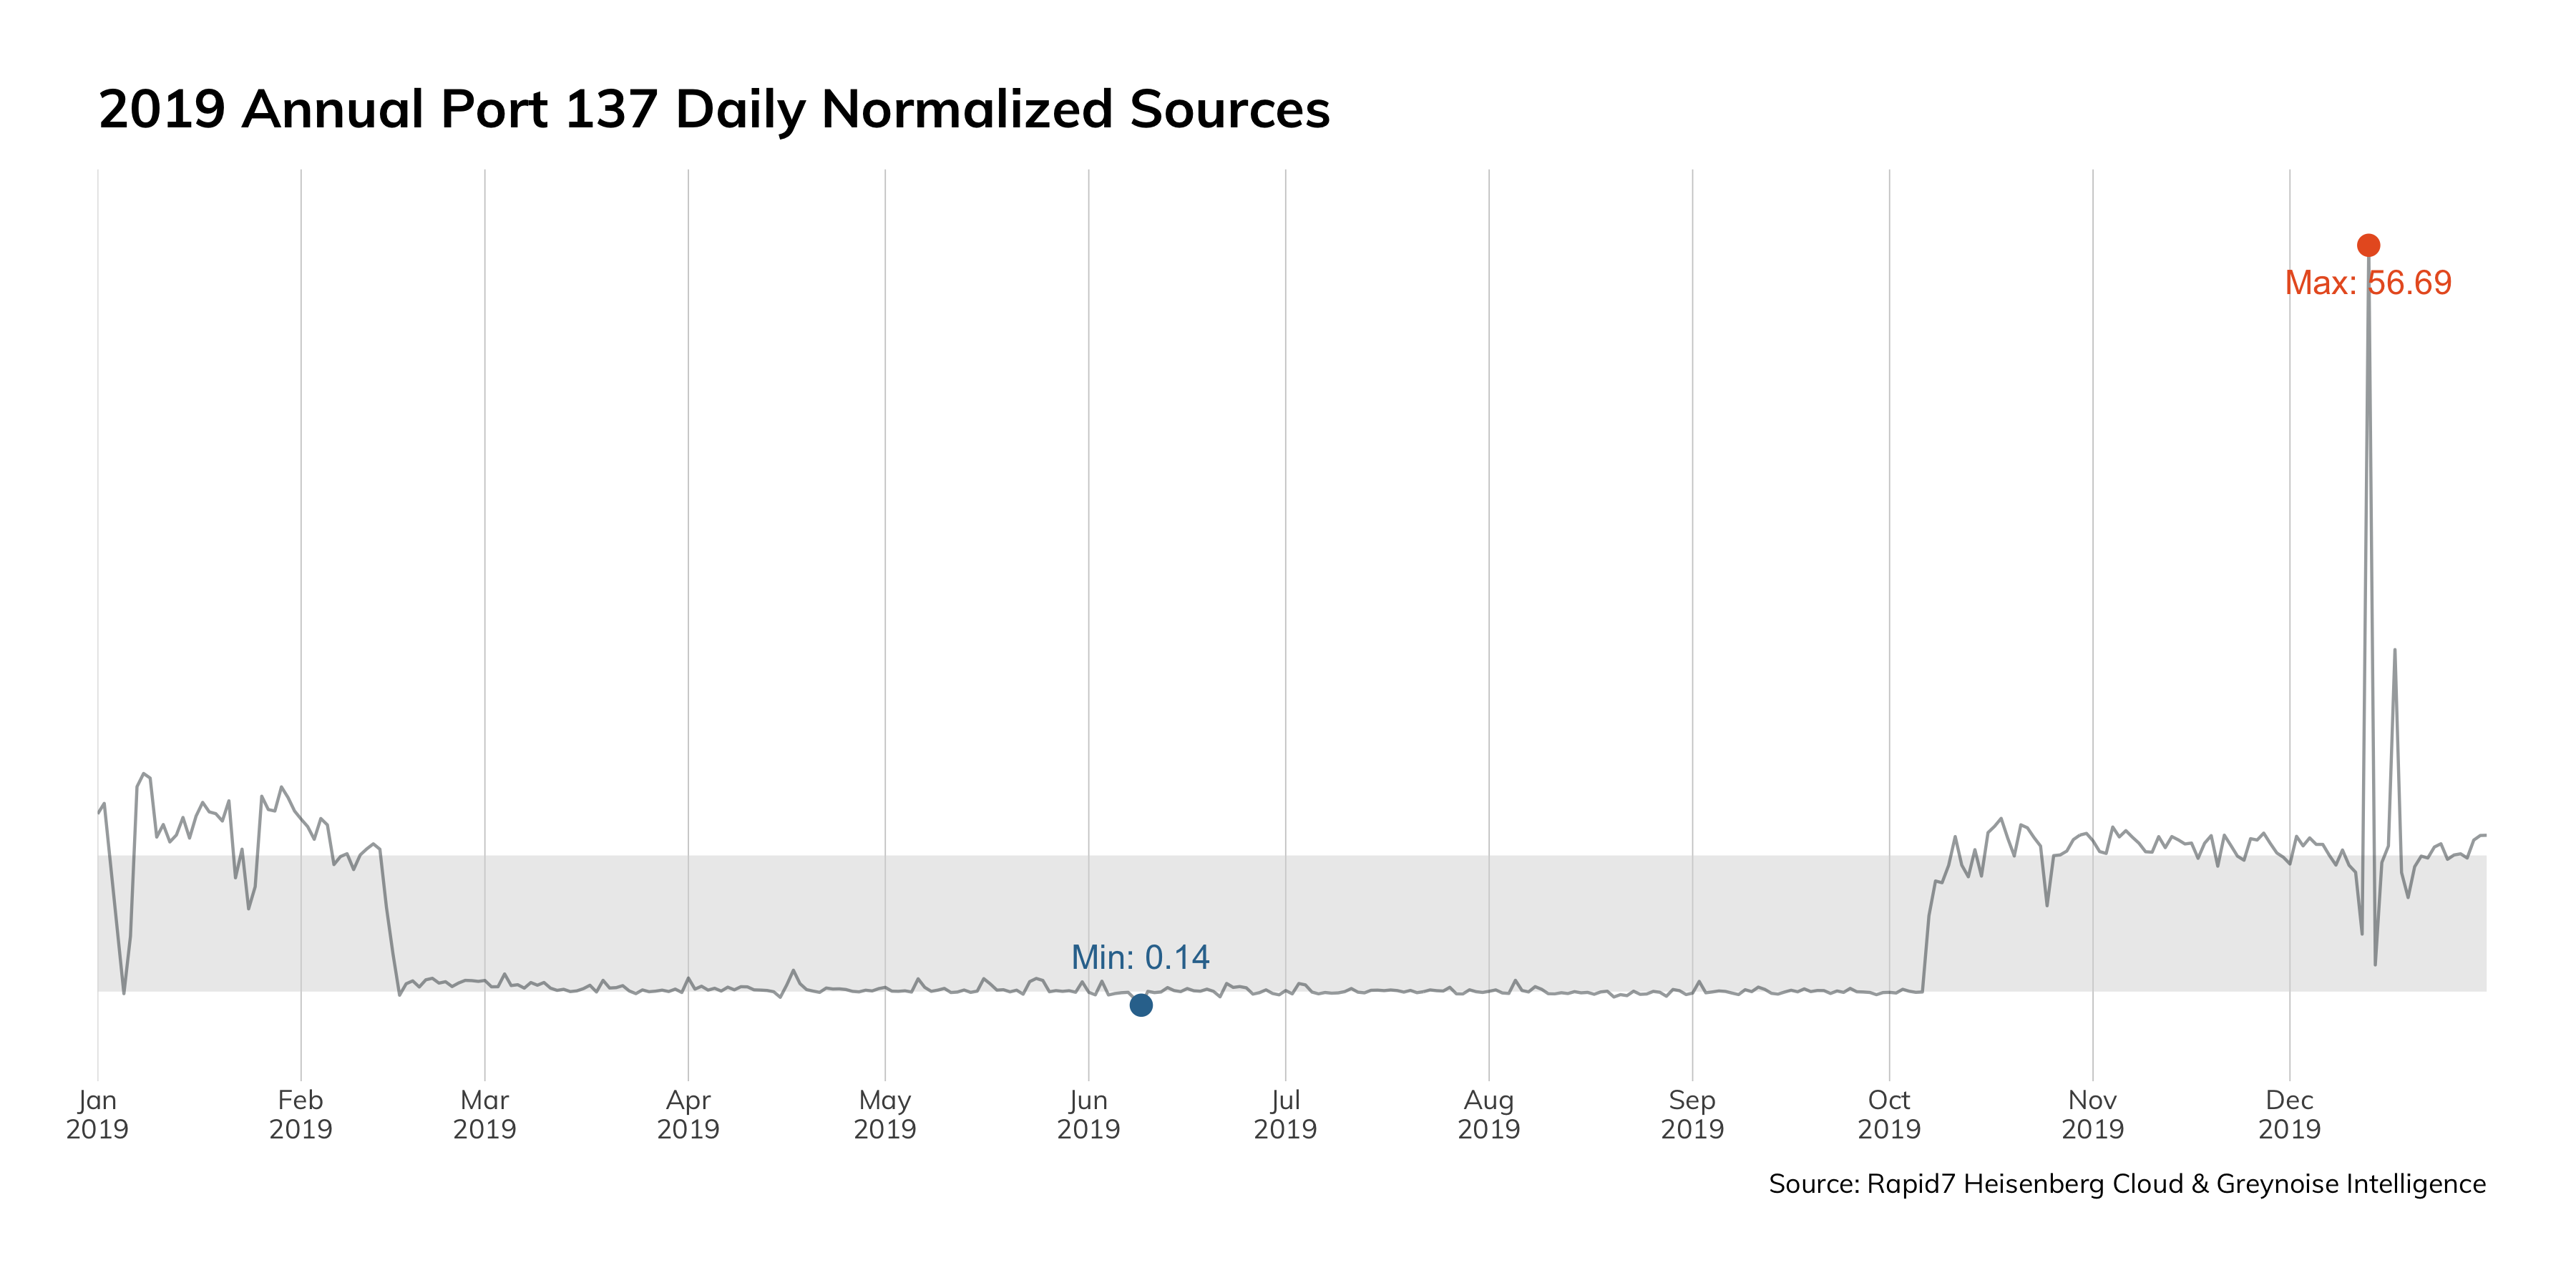 Figure 6: 2019 Annual Port 137 Daily Normalized Sources